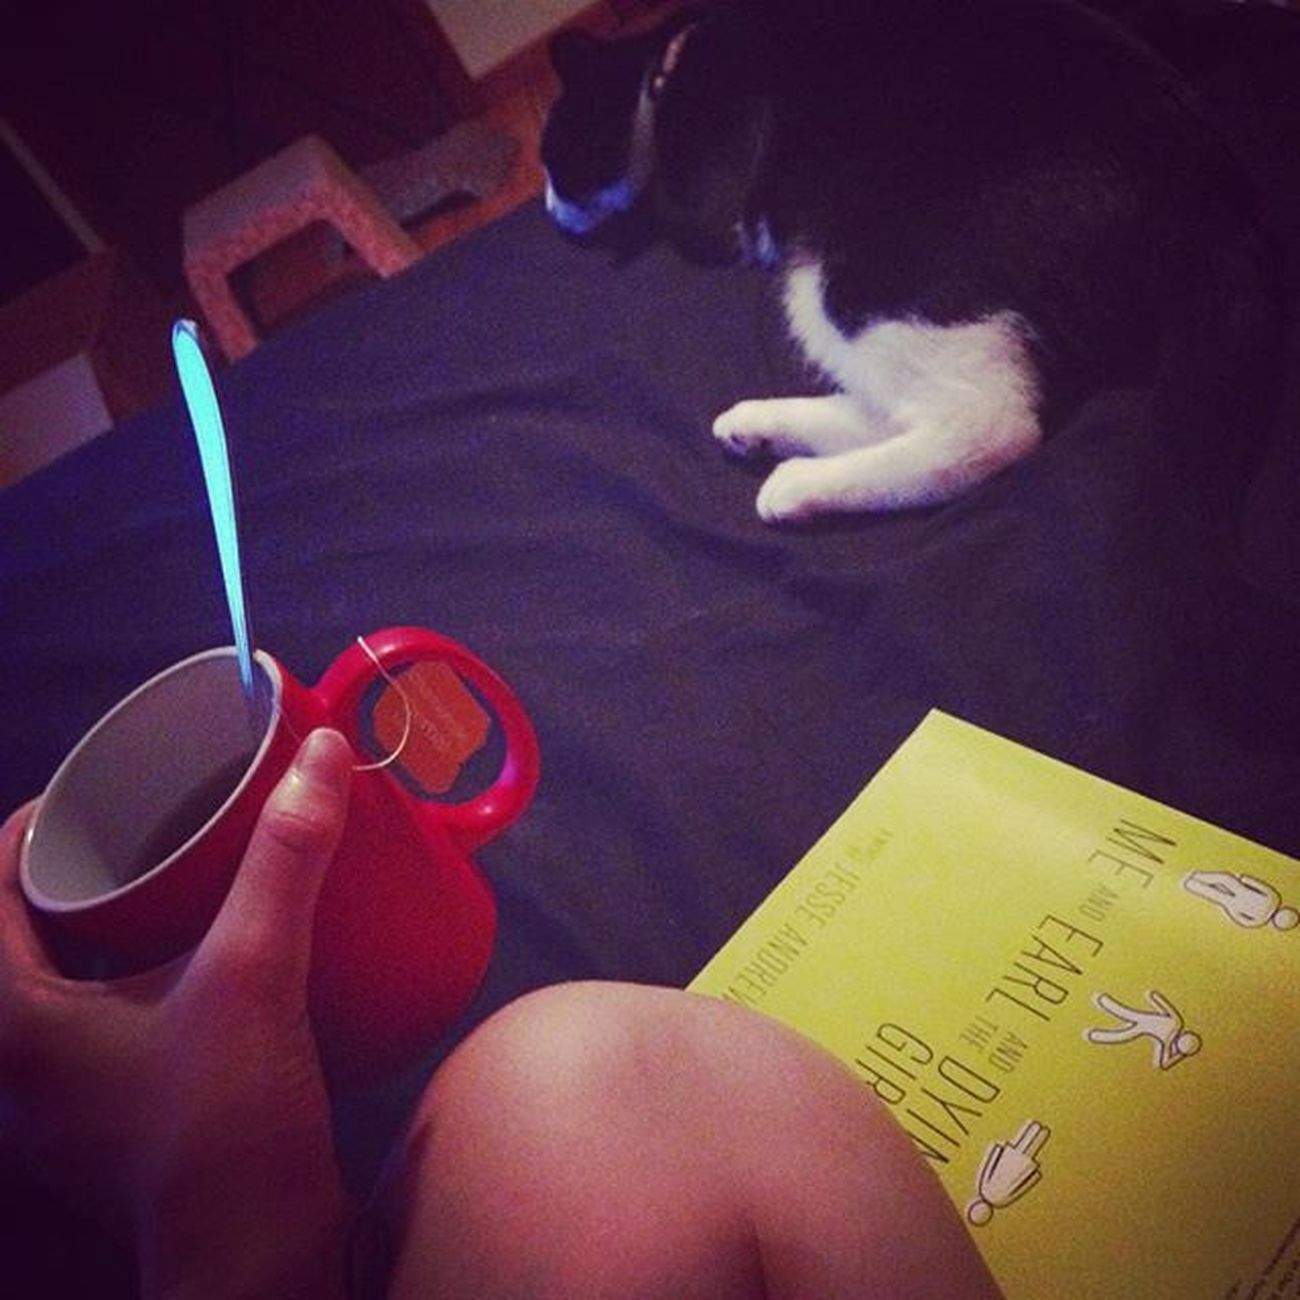 Does it get any better than this? Relaxing night with a hot cup of tea, a good book, and a great companion. Cat Kitty Dj Blackandwhitecat Goodbook Meearlandthedyinggirl Relaxingnight Relaxation Aah Content Hottea ChamomileTea Chamomile Yum